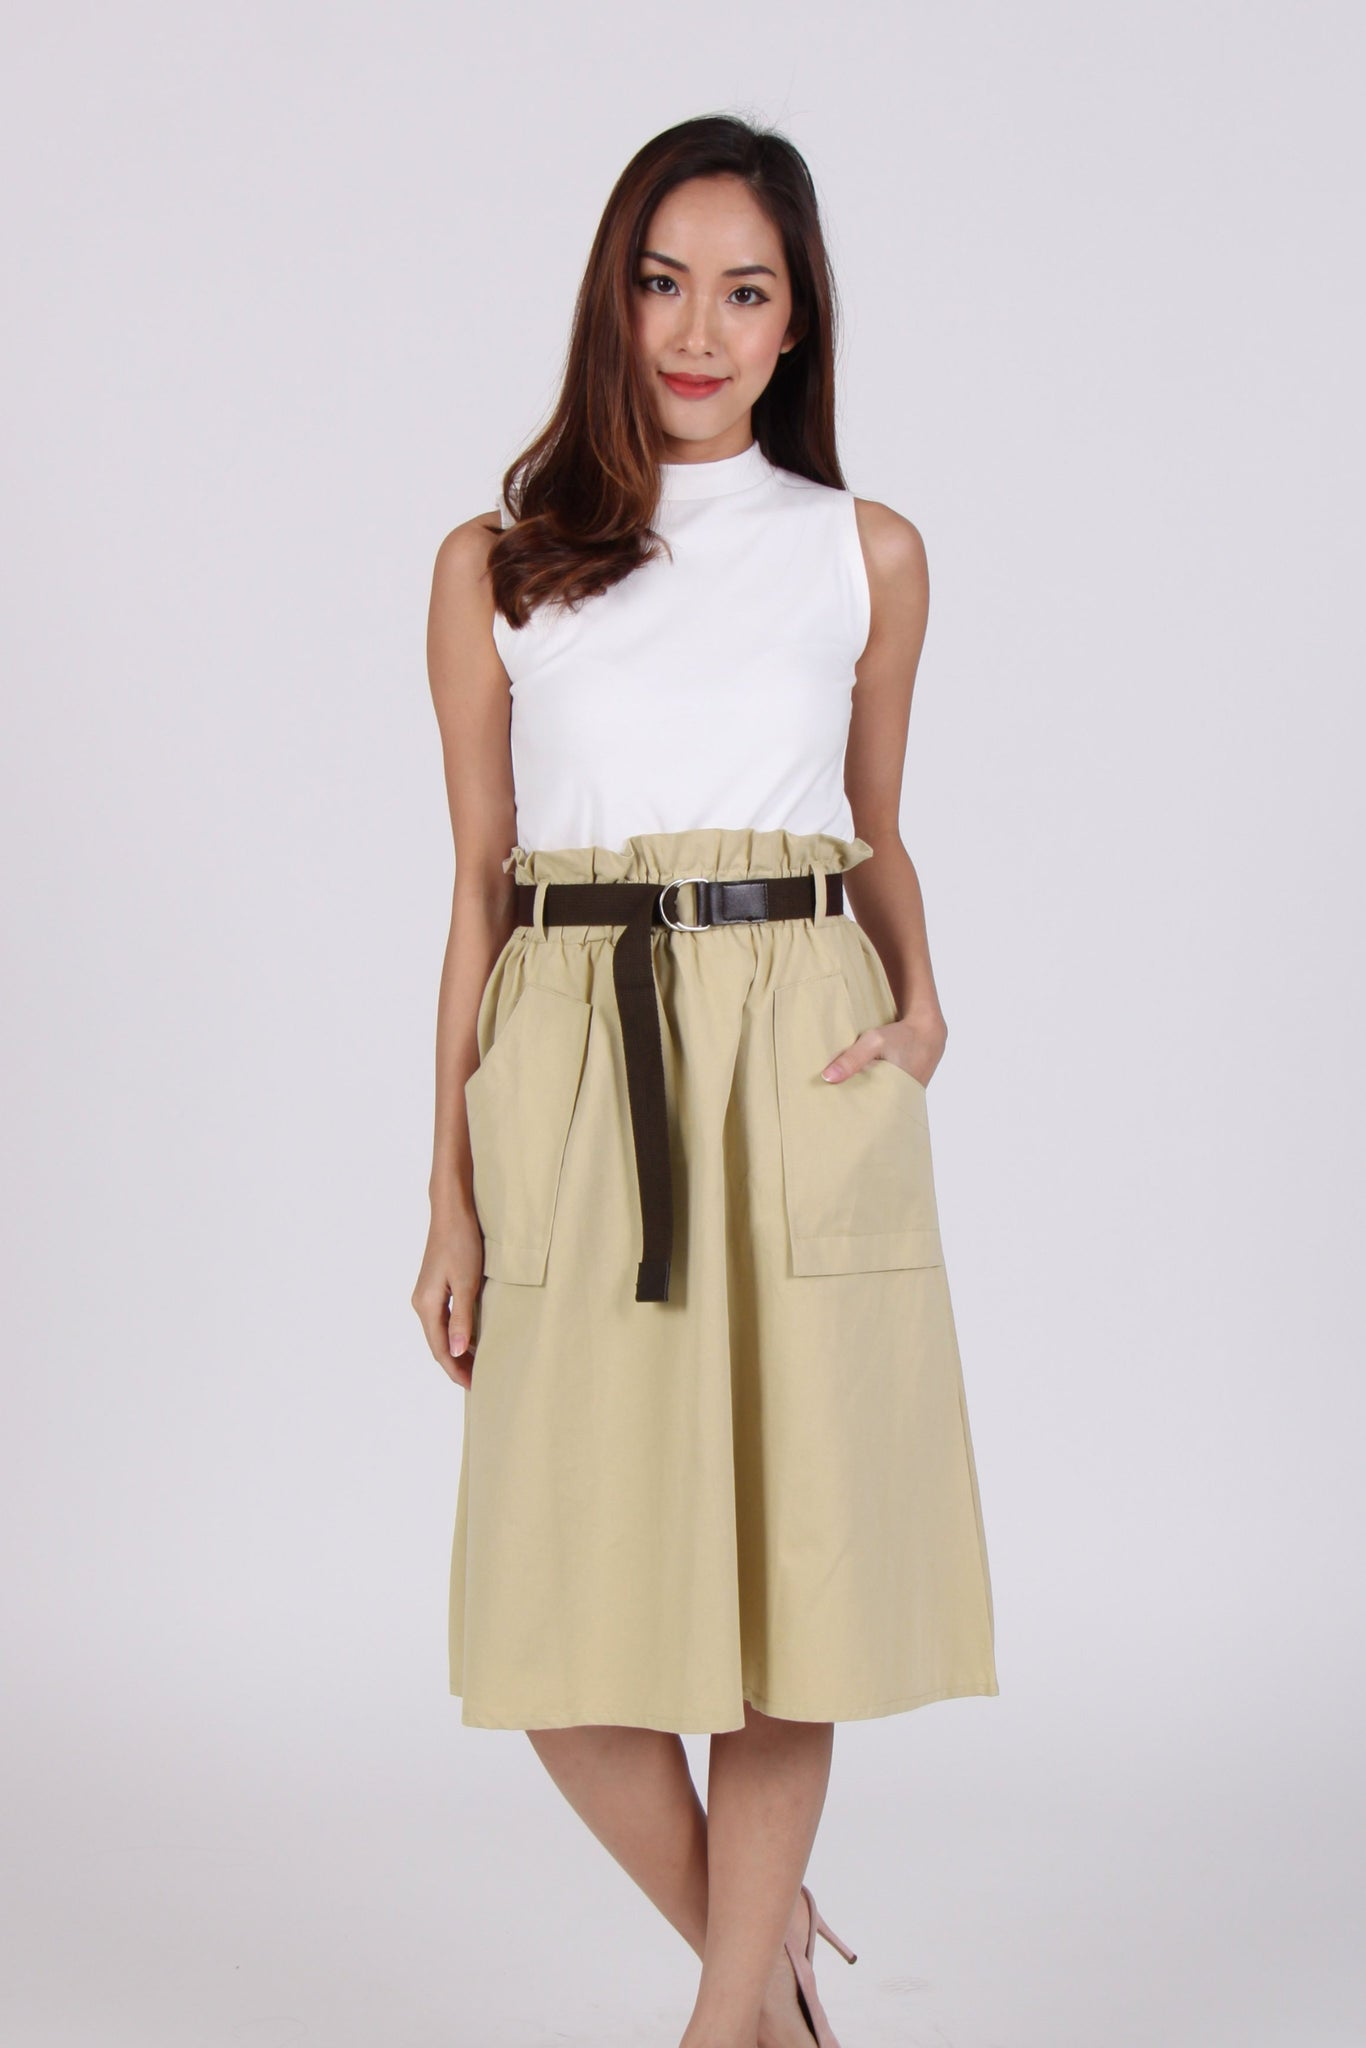 Large Pockets High Waist Midi Skirt In Yellow-Beige